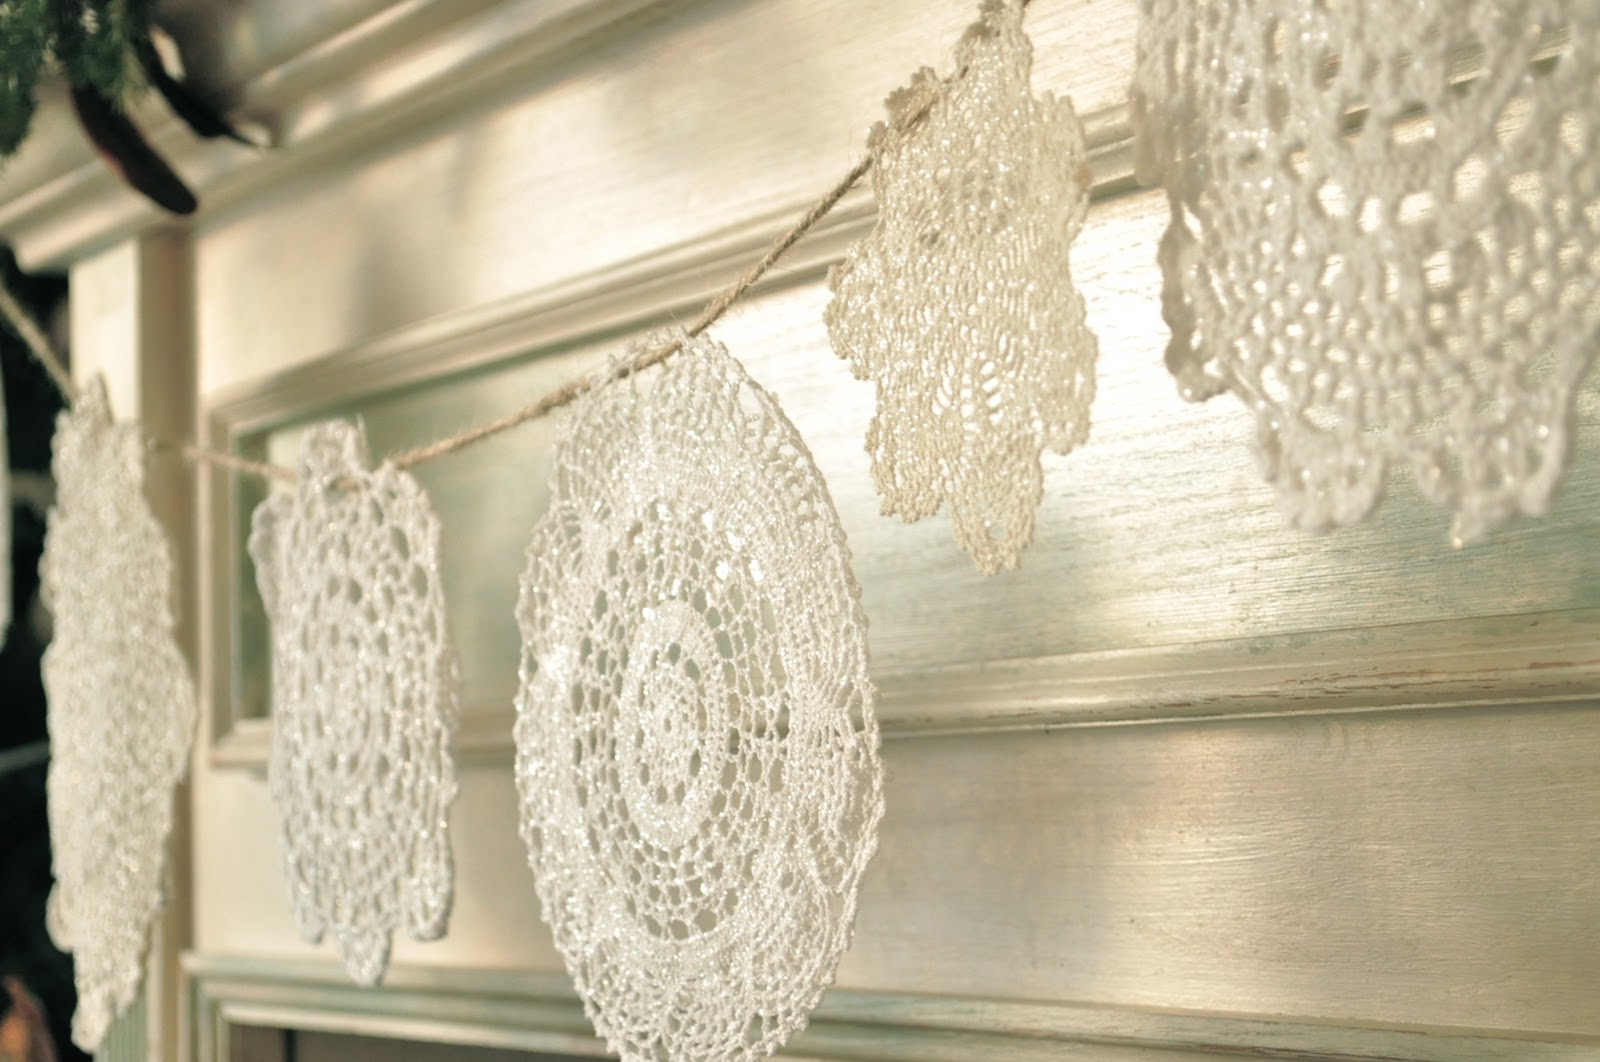 The sparkly doily snowflake banner jennifer rizzo the sparkly doily snowflake banner arubaitofo Images